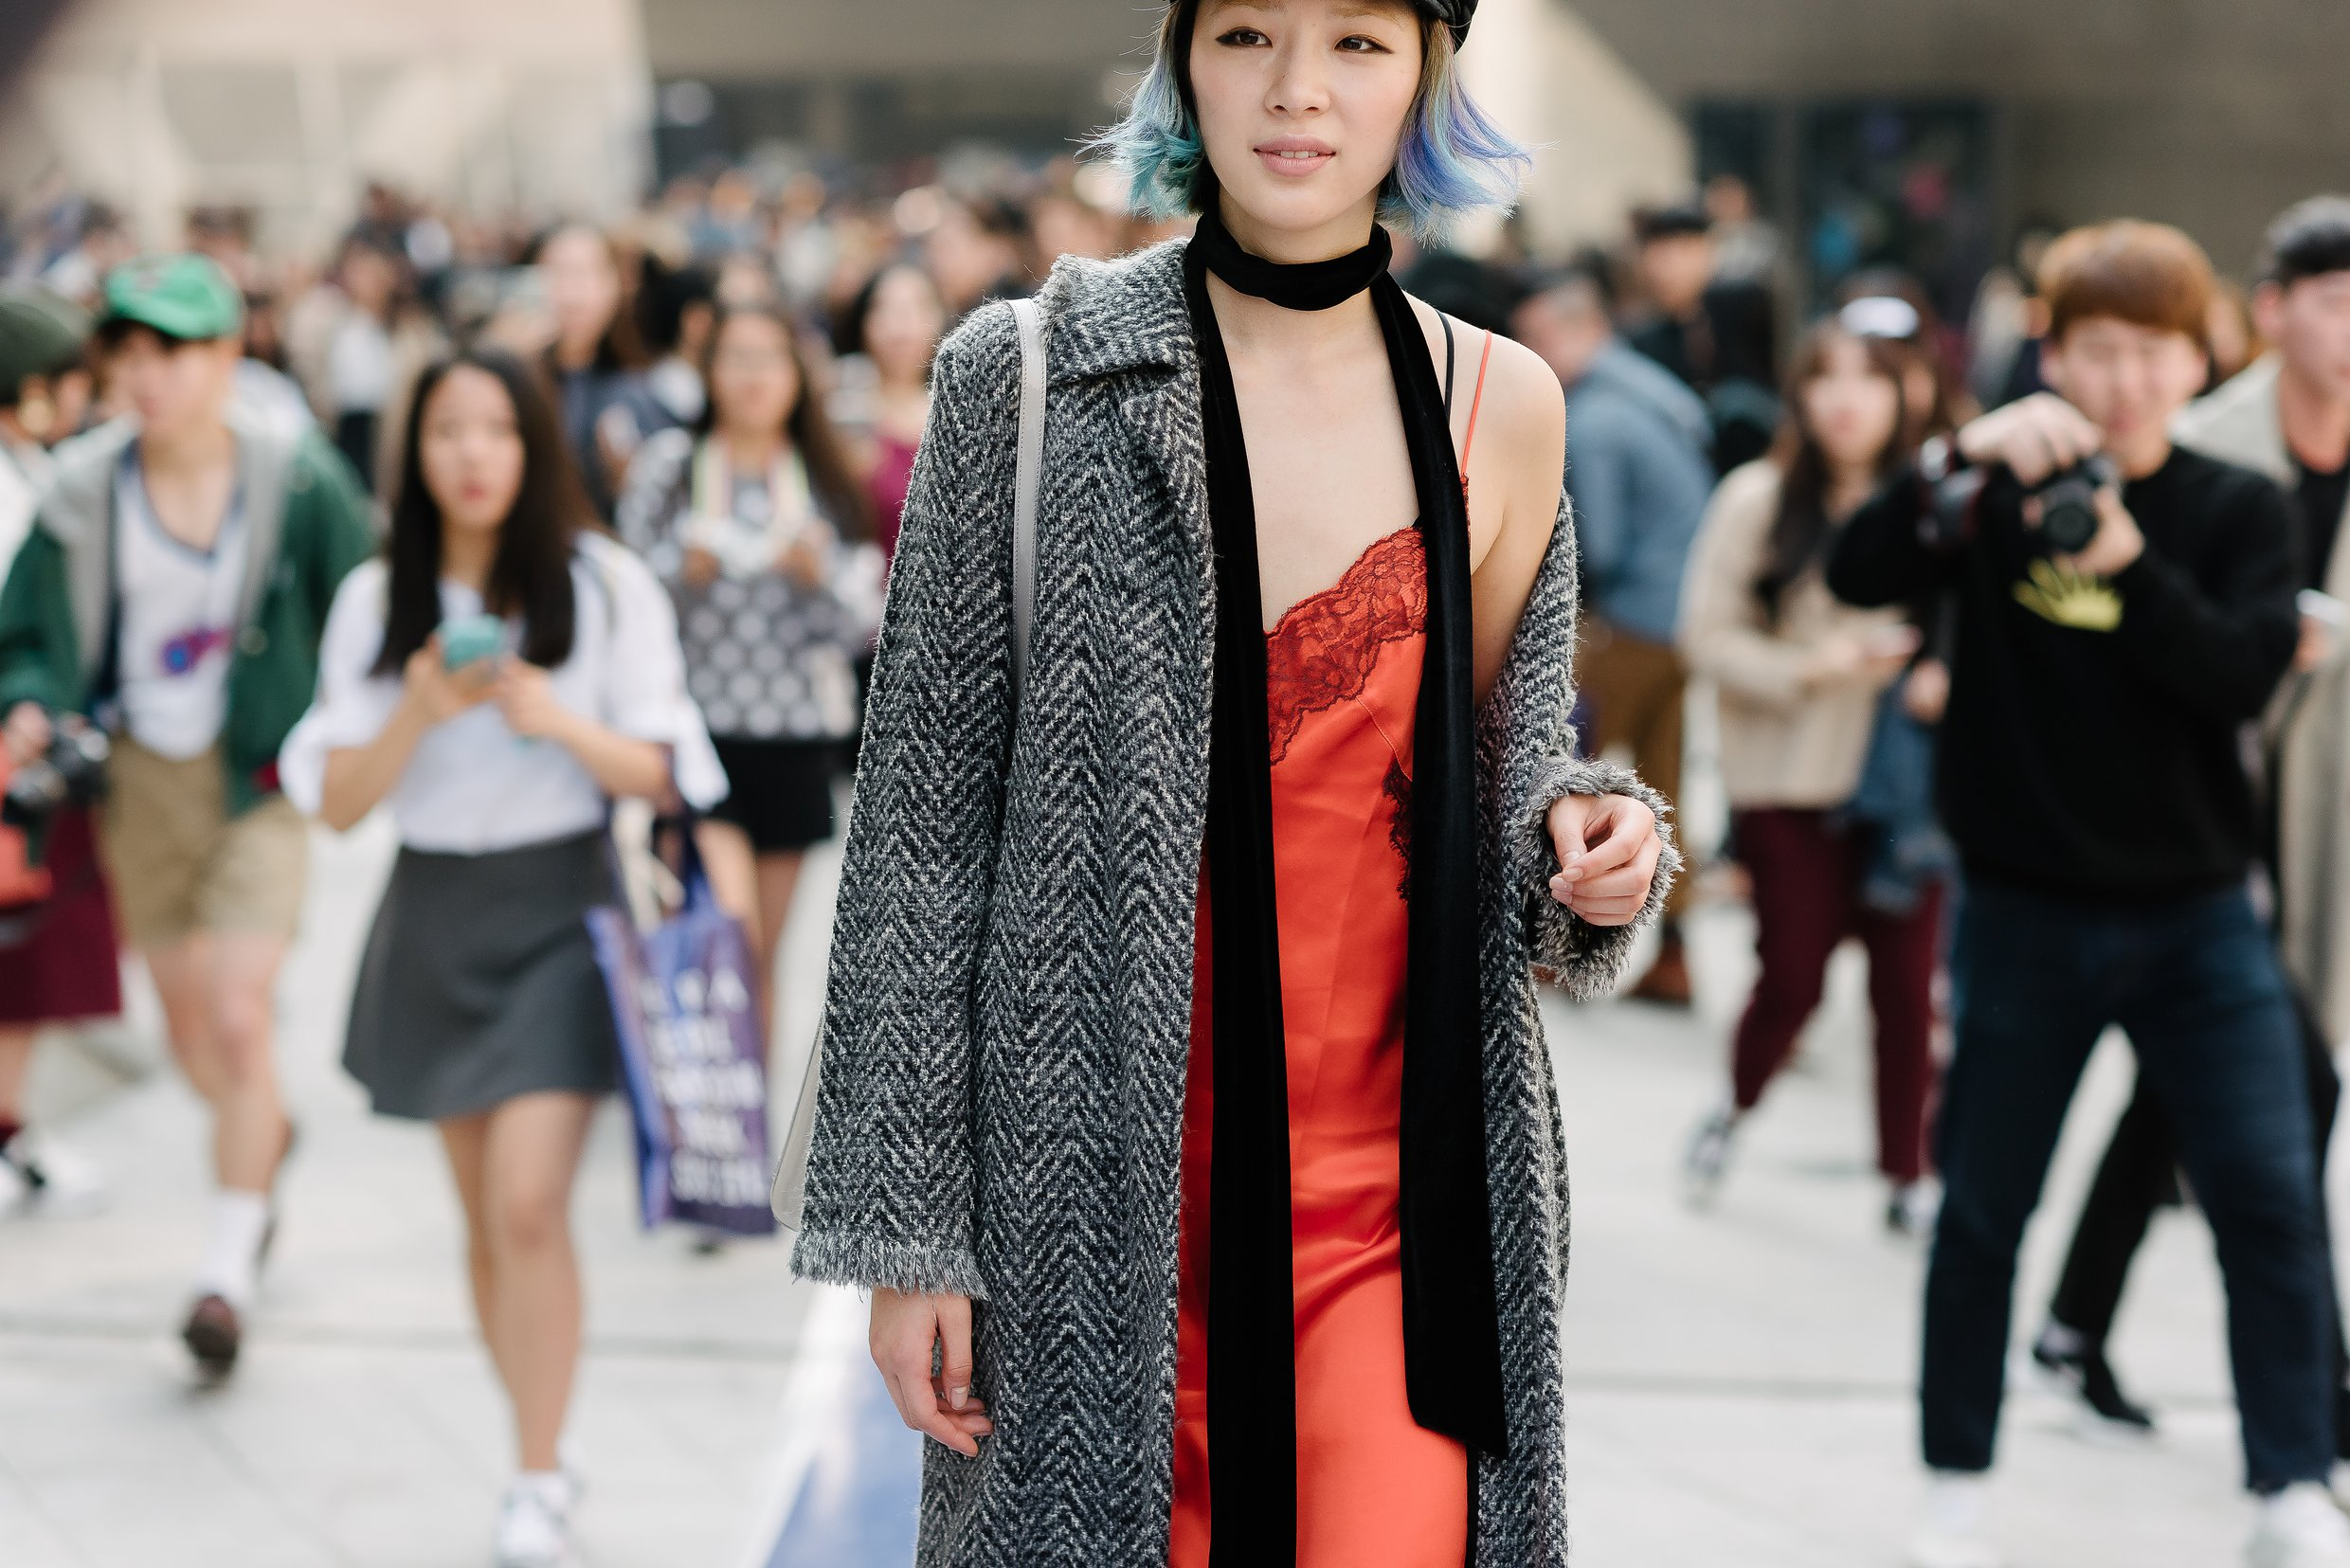 seoul-fashion-week-2015-street-style-day-3-01.jpg